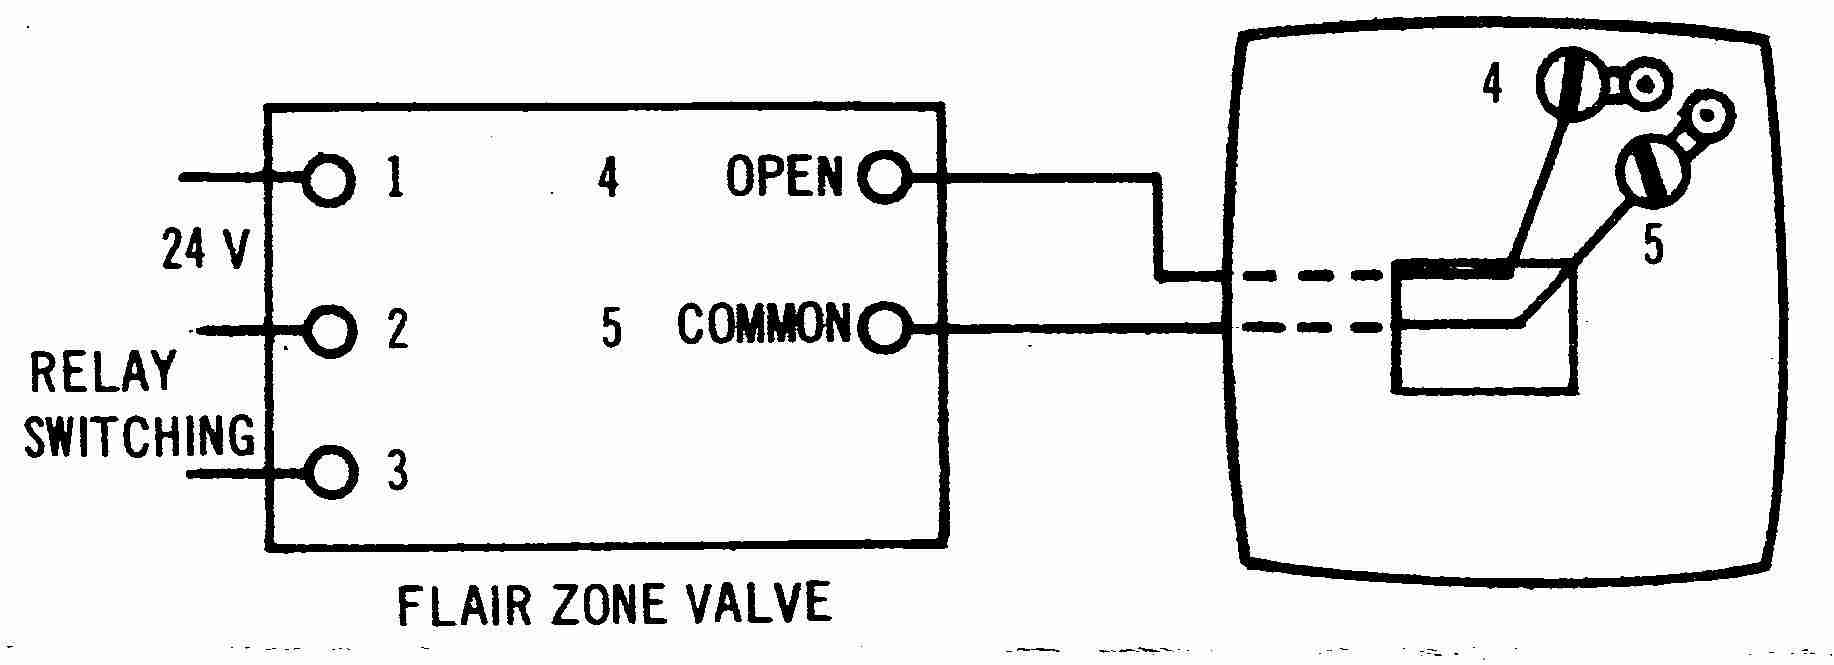 Room Thermostat Wiring Diagrams For Hvac Systems - Thermostat Wiring Diagram